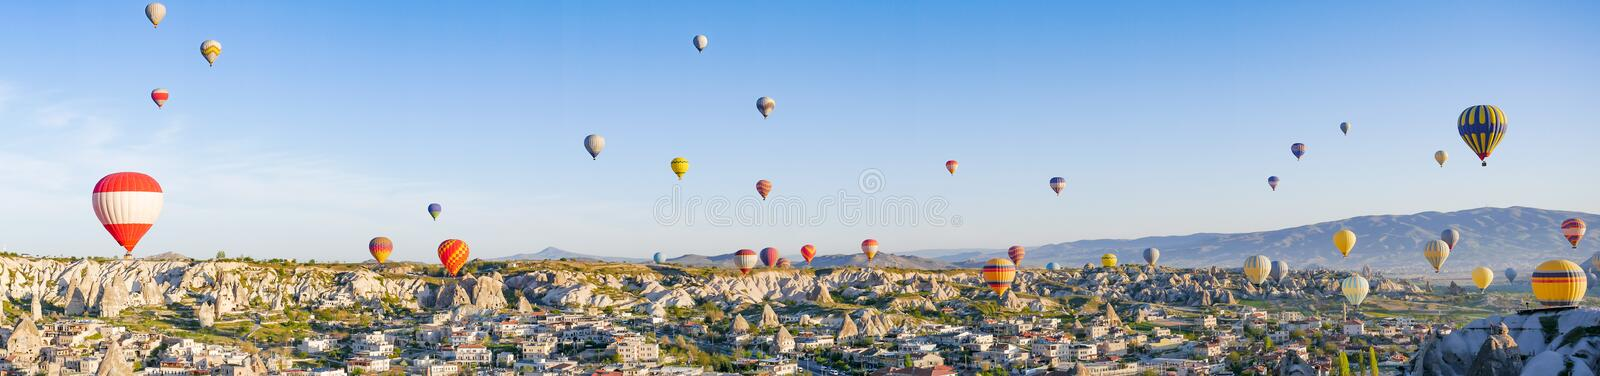 Colorful hot air balloons flying over rock landscape at Cappadocia Turkey royalty free stock image